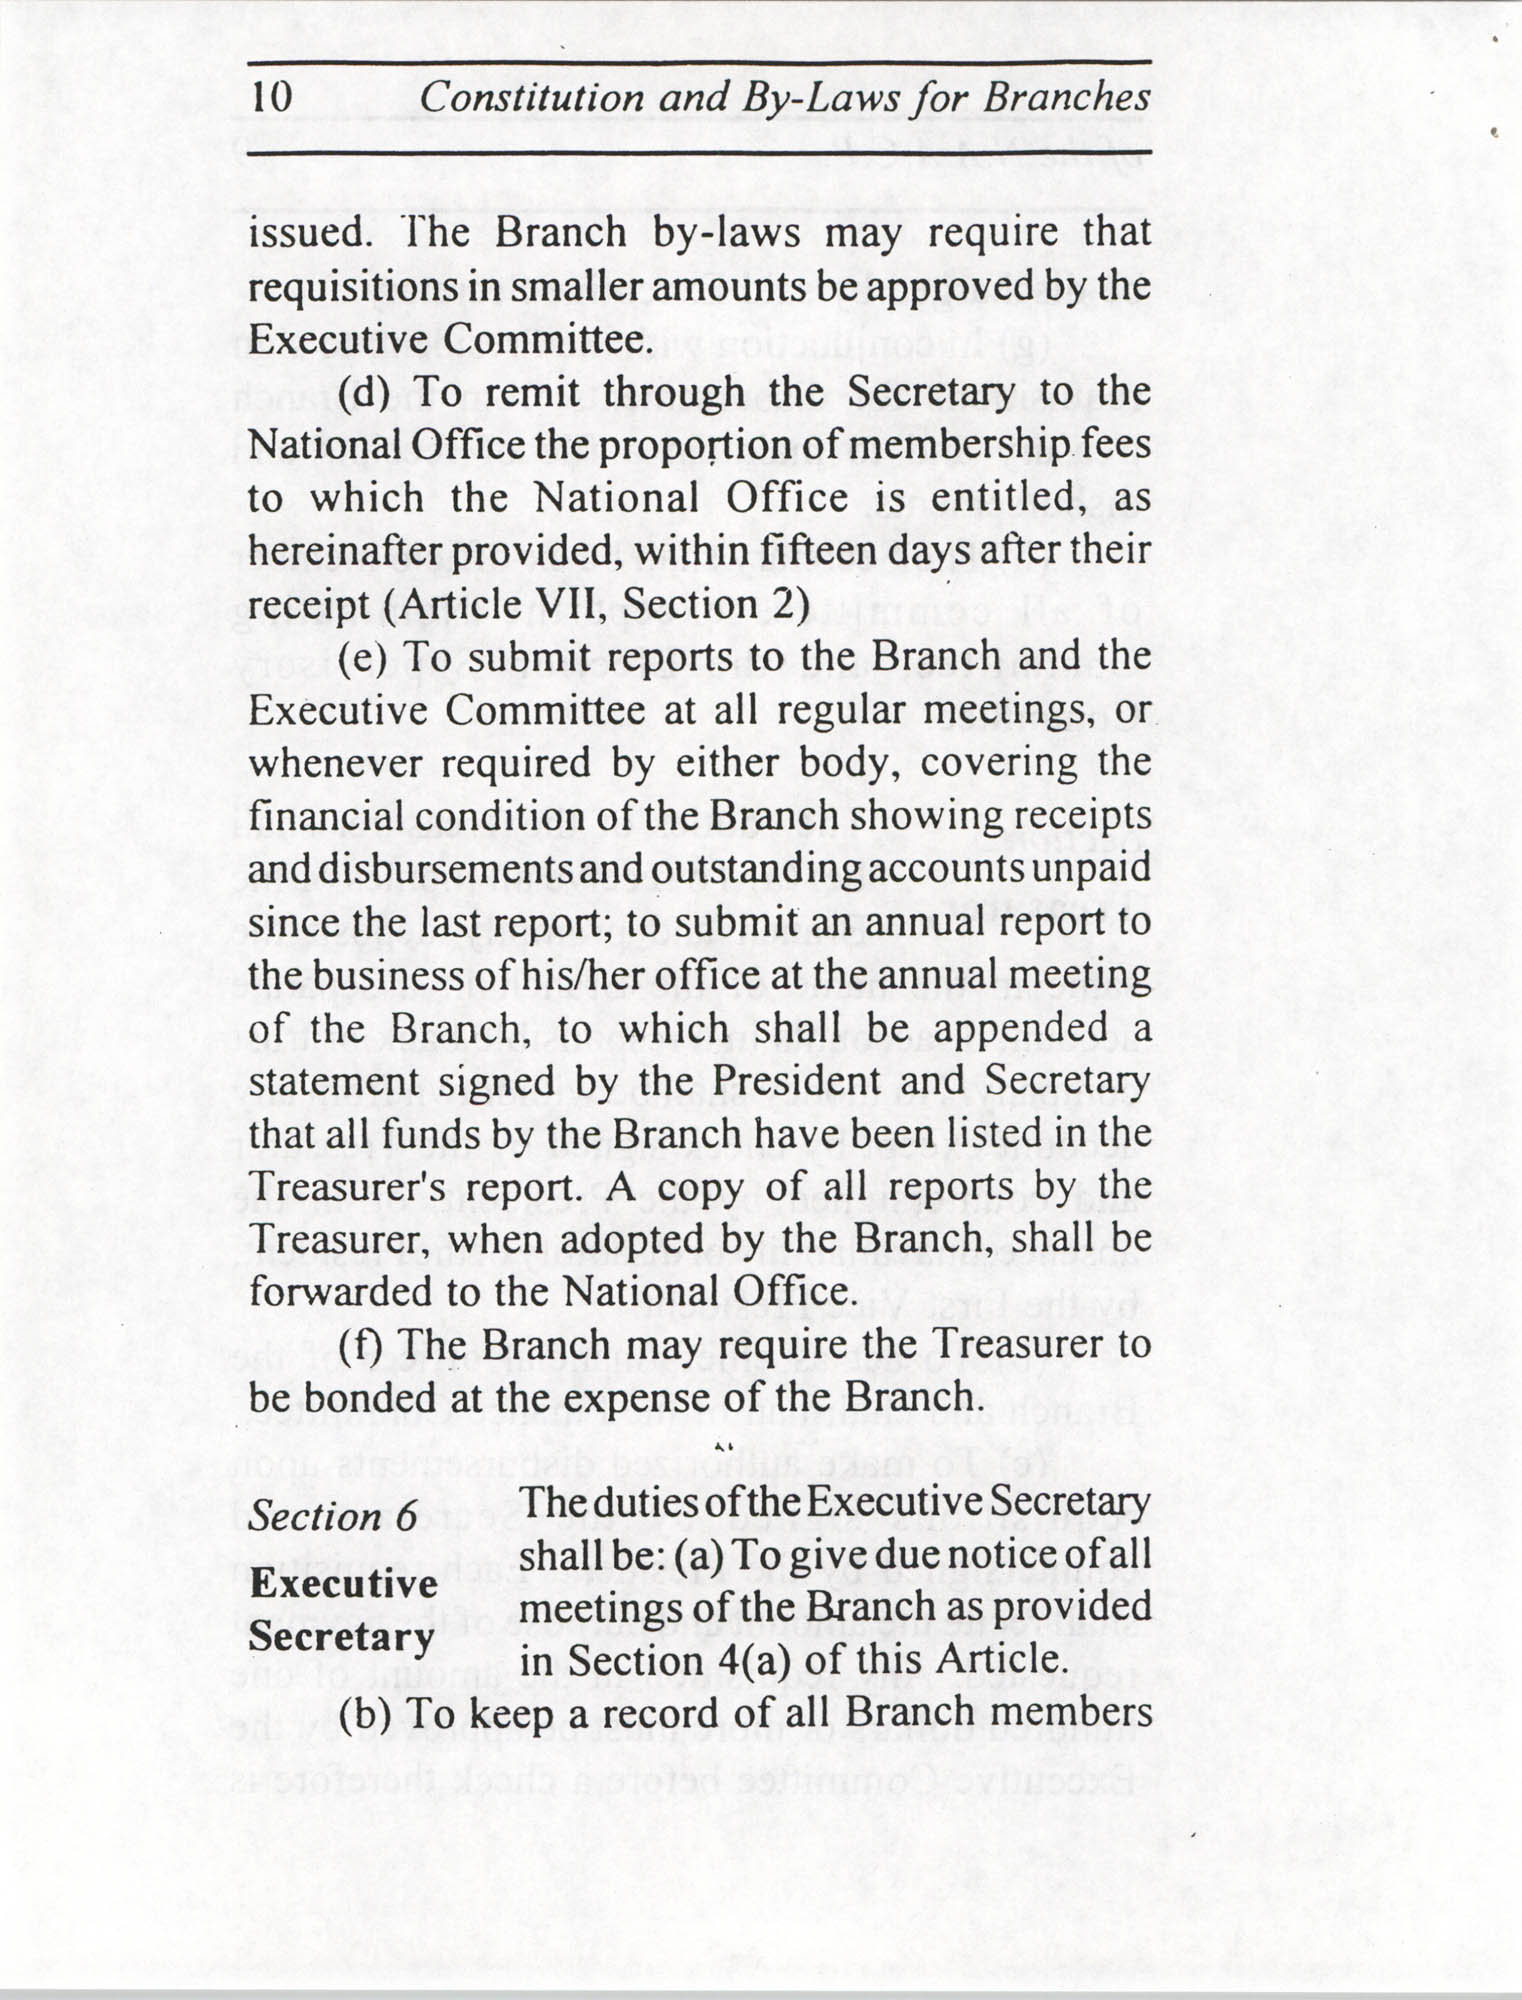 Constitution and By-Laws for Branches of the NAACP, July 1994, Page 10